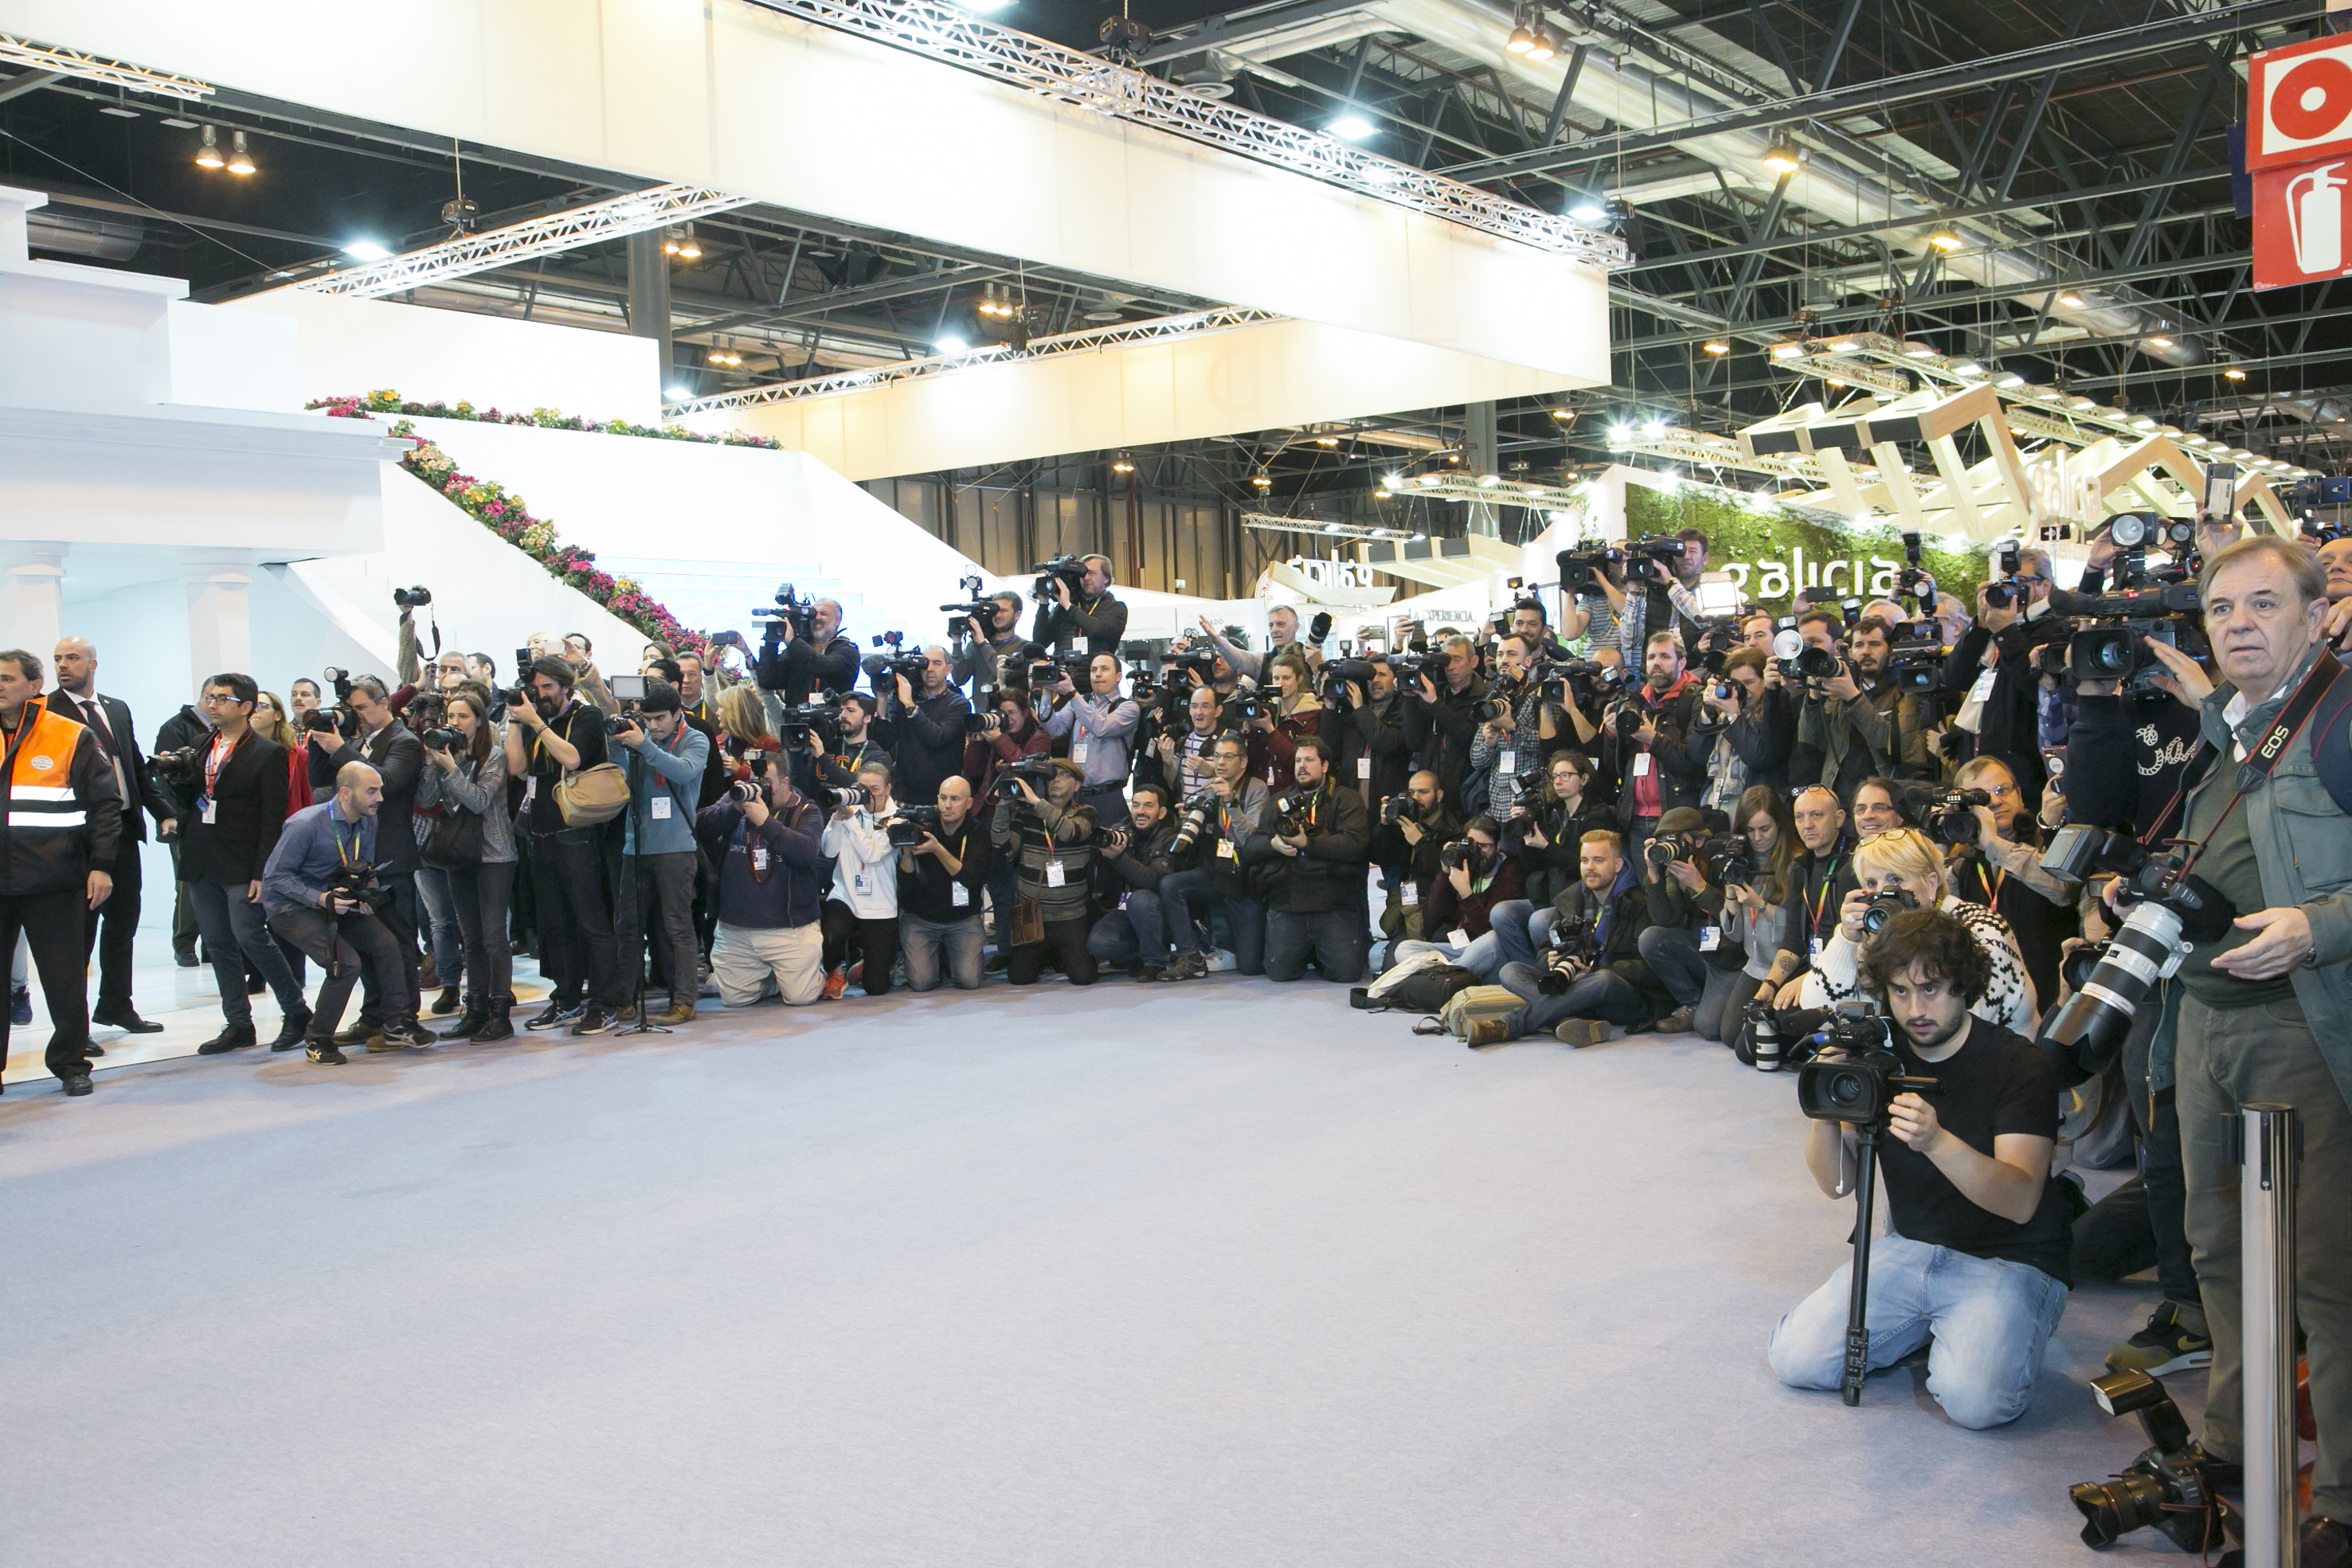 #FITUR2020: FITUR celebrates four decades of travel shows and industry success